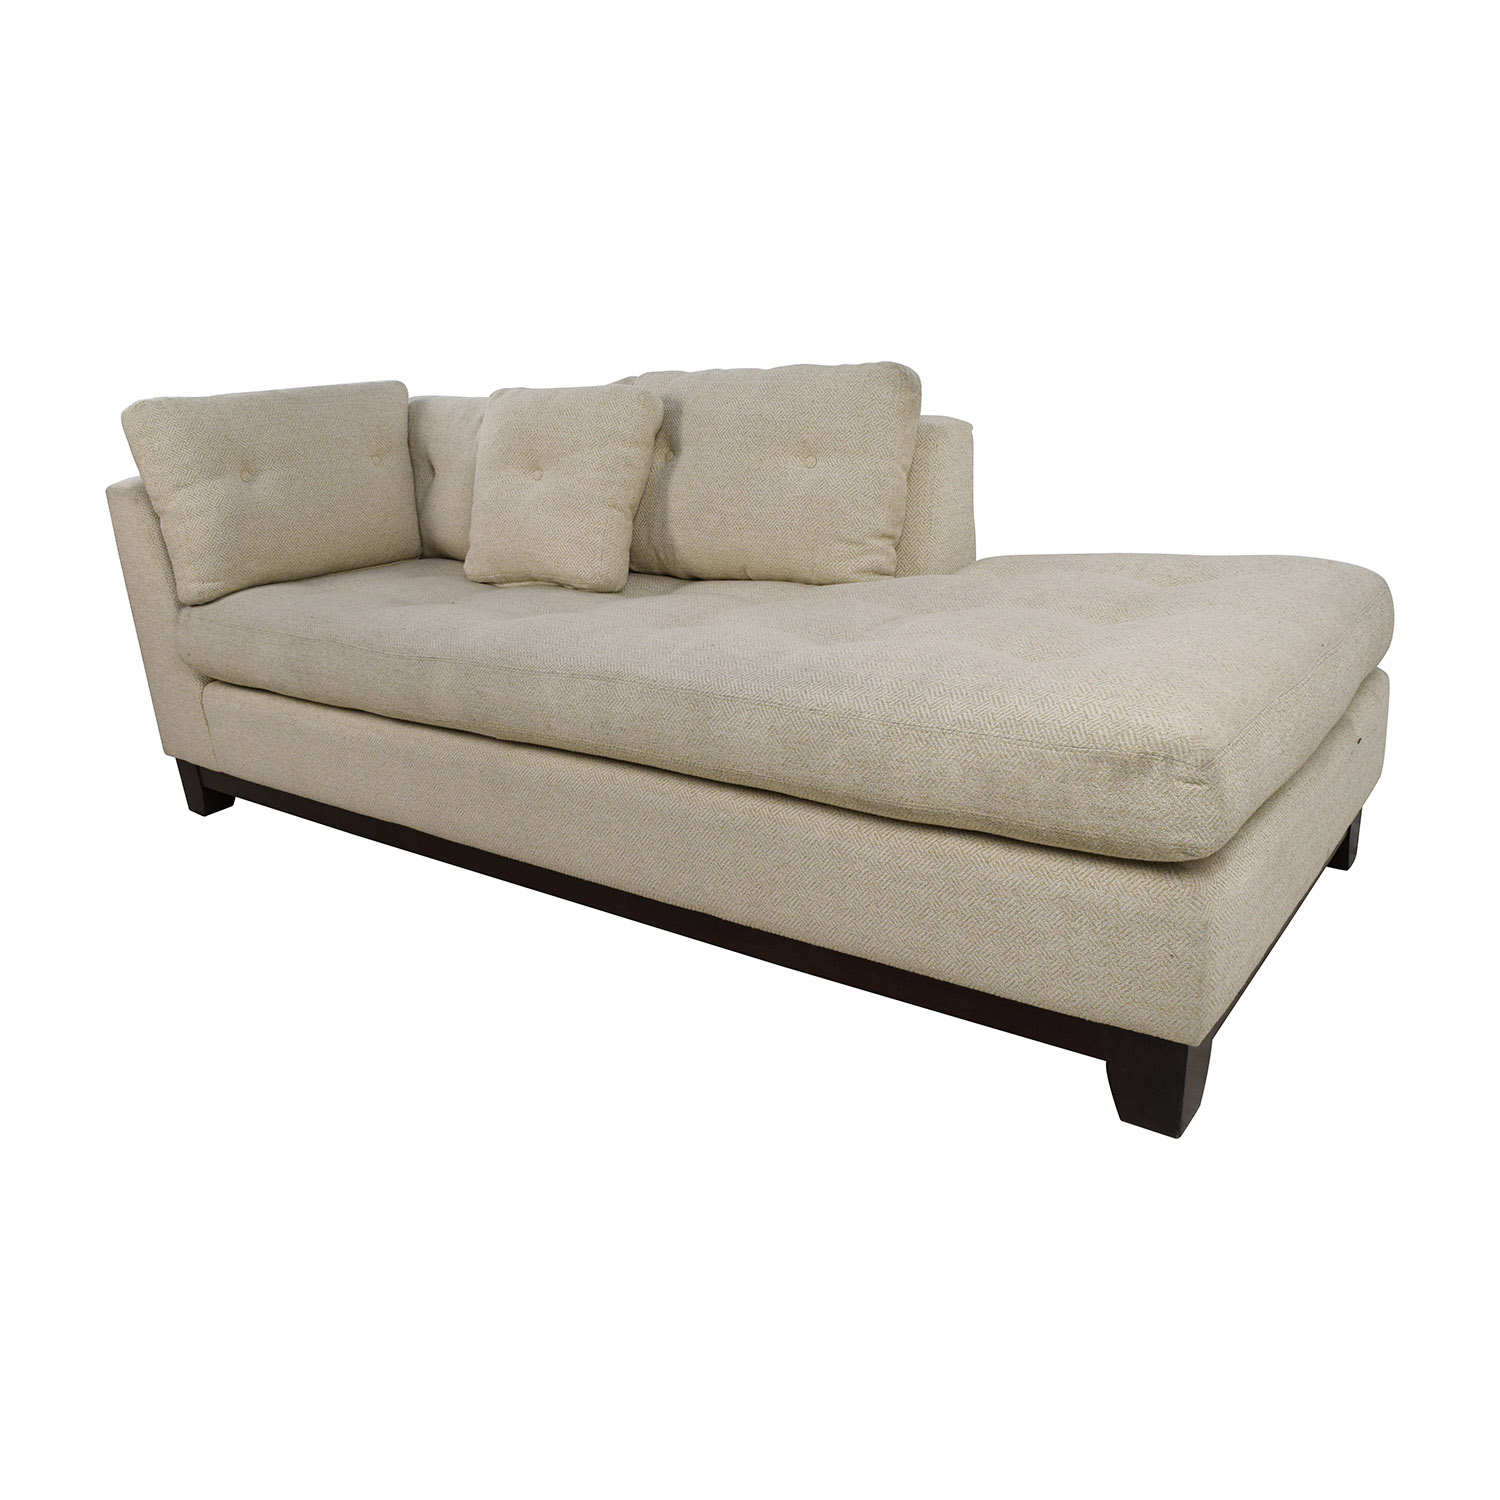 Tufted chaise sofa best 25 tufted sectional ideas on pinterest thesofa Loveseat chaise sectional